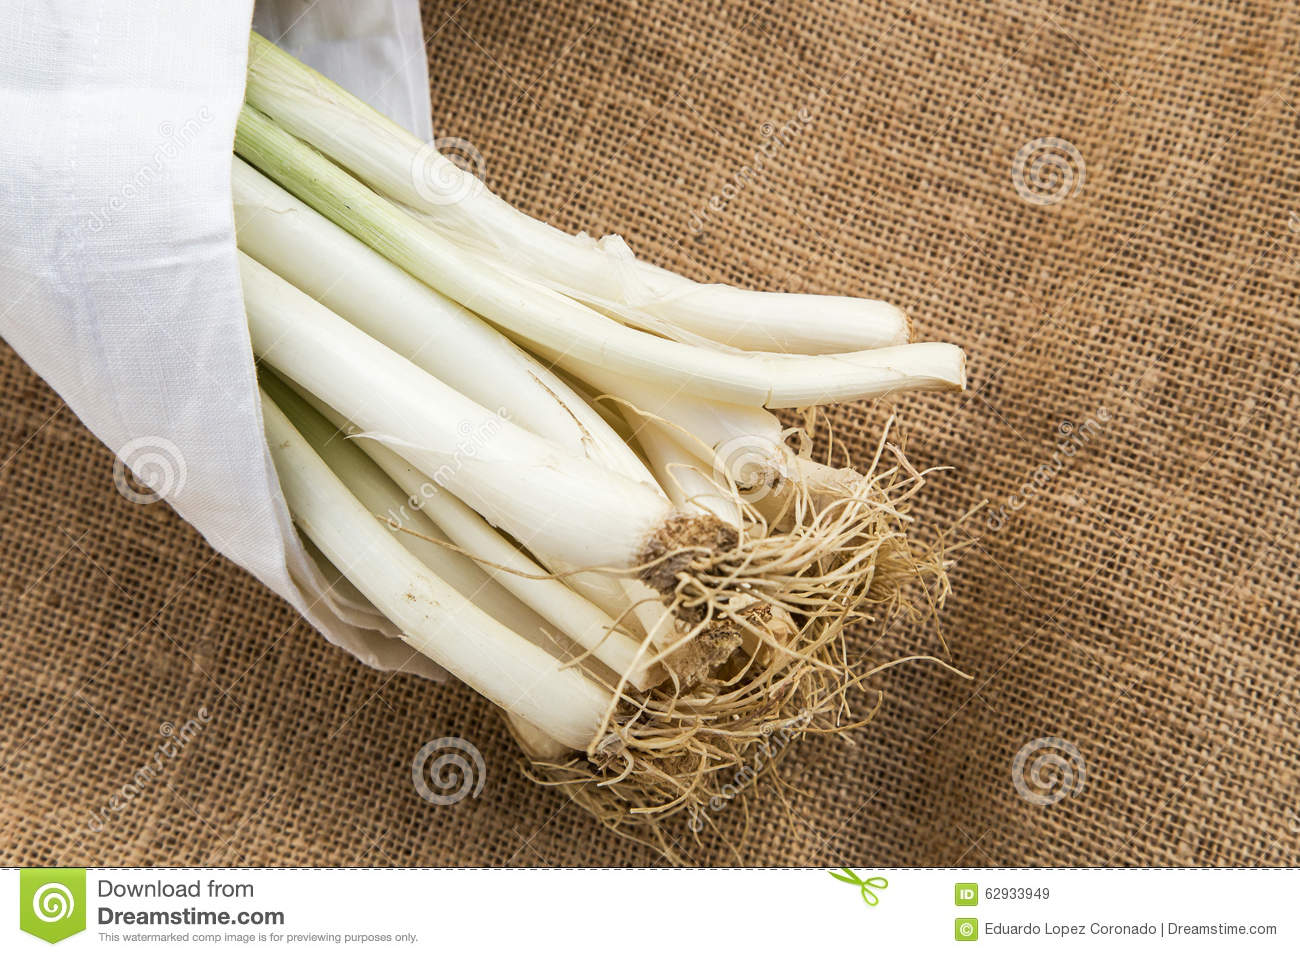 Leeks with white napkin